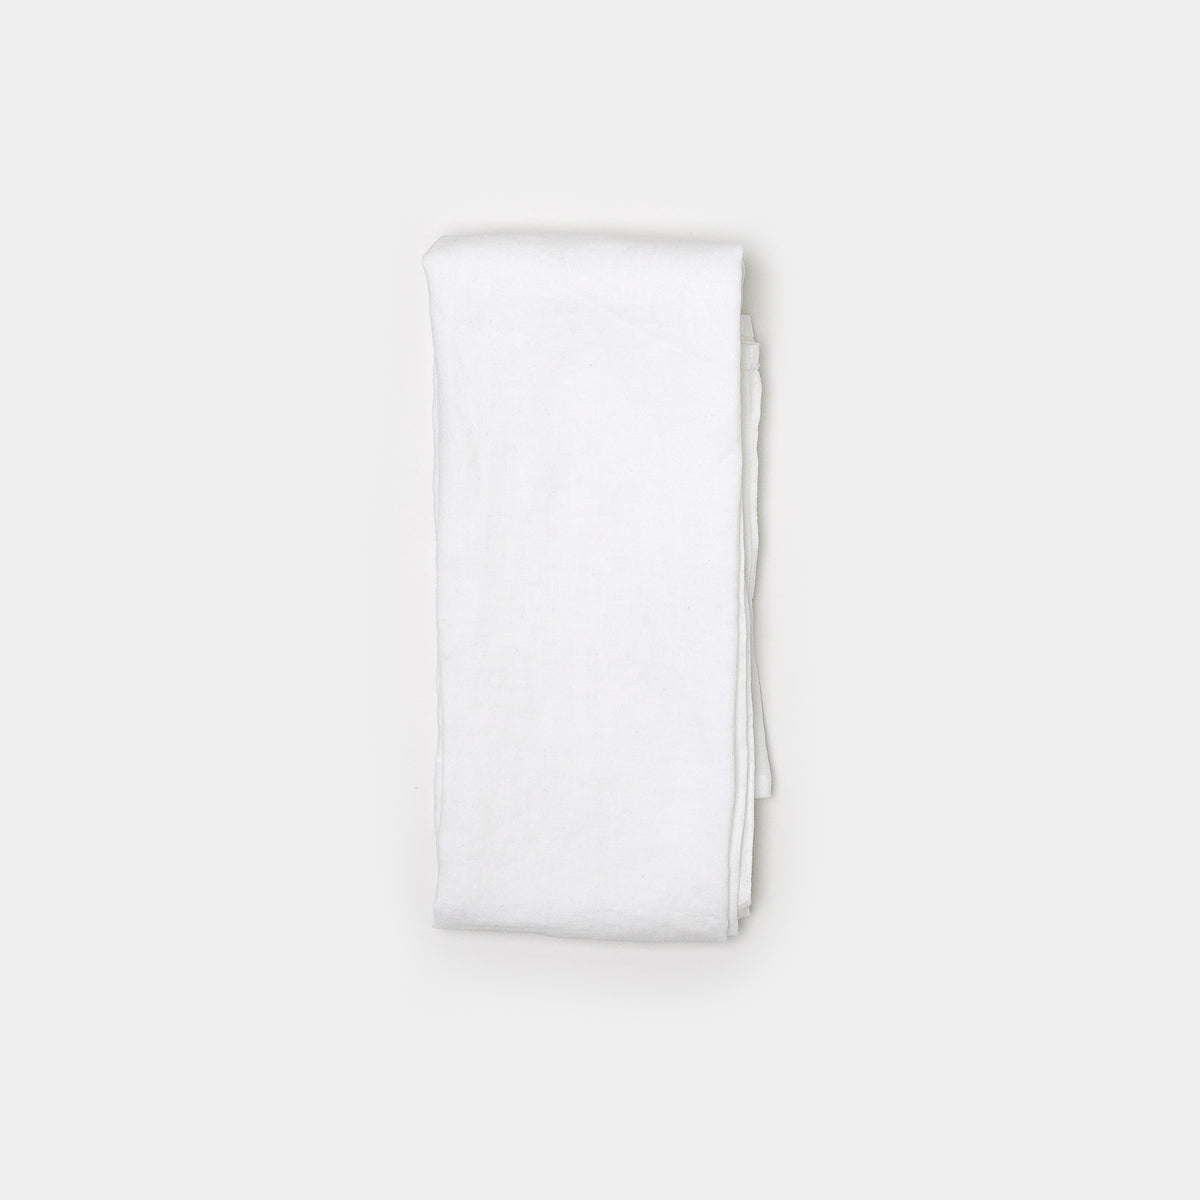 Load image into Gallery viewer, Single Vintage Linen White Pillowcase by Matteo